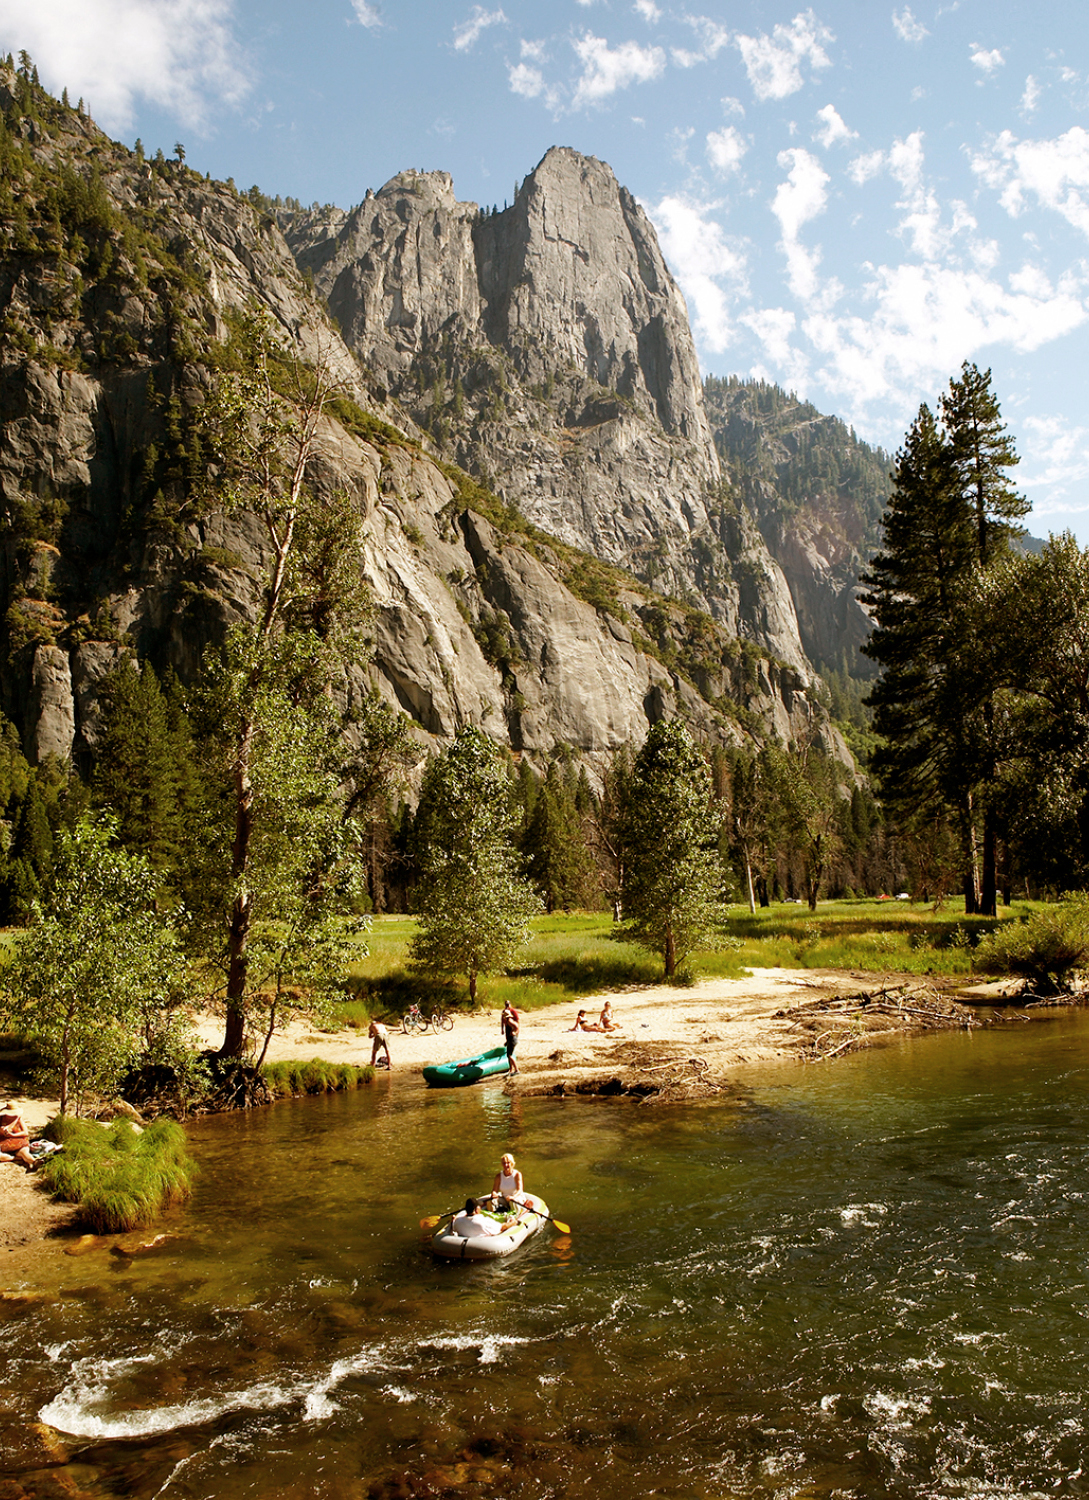 MERCED RIVER IN THE VALLEY